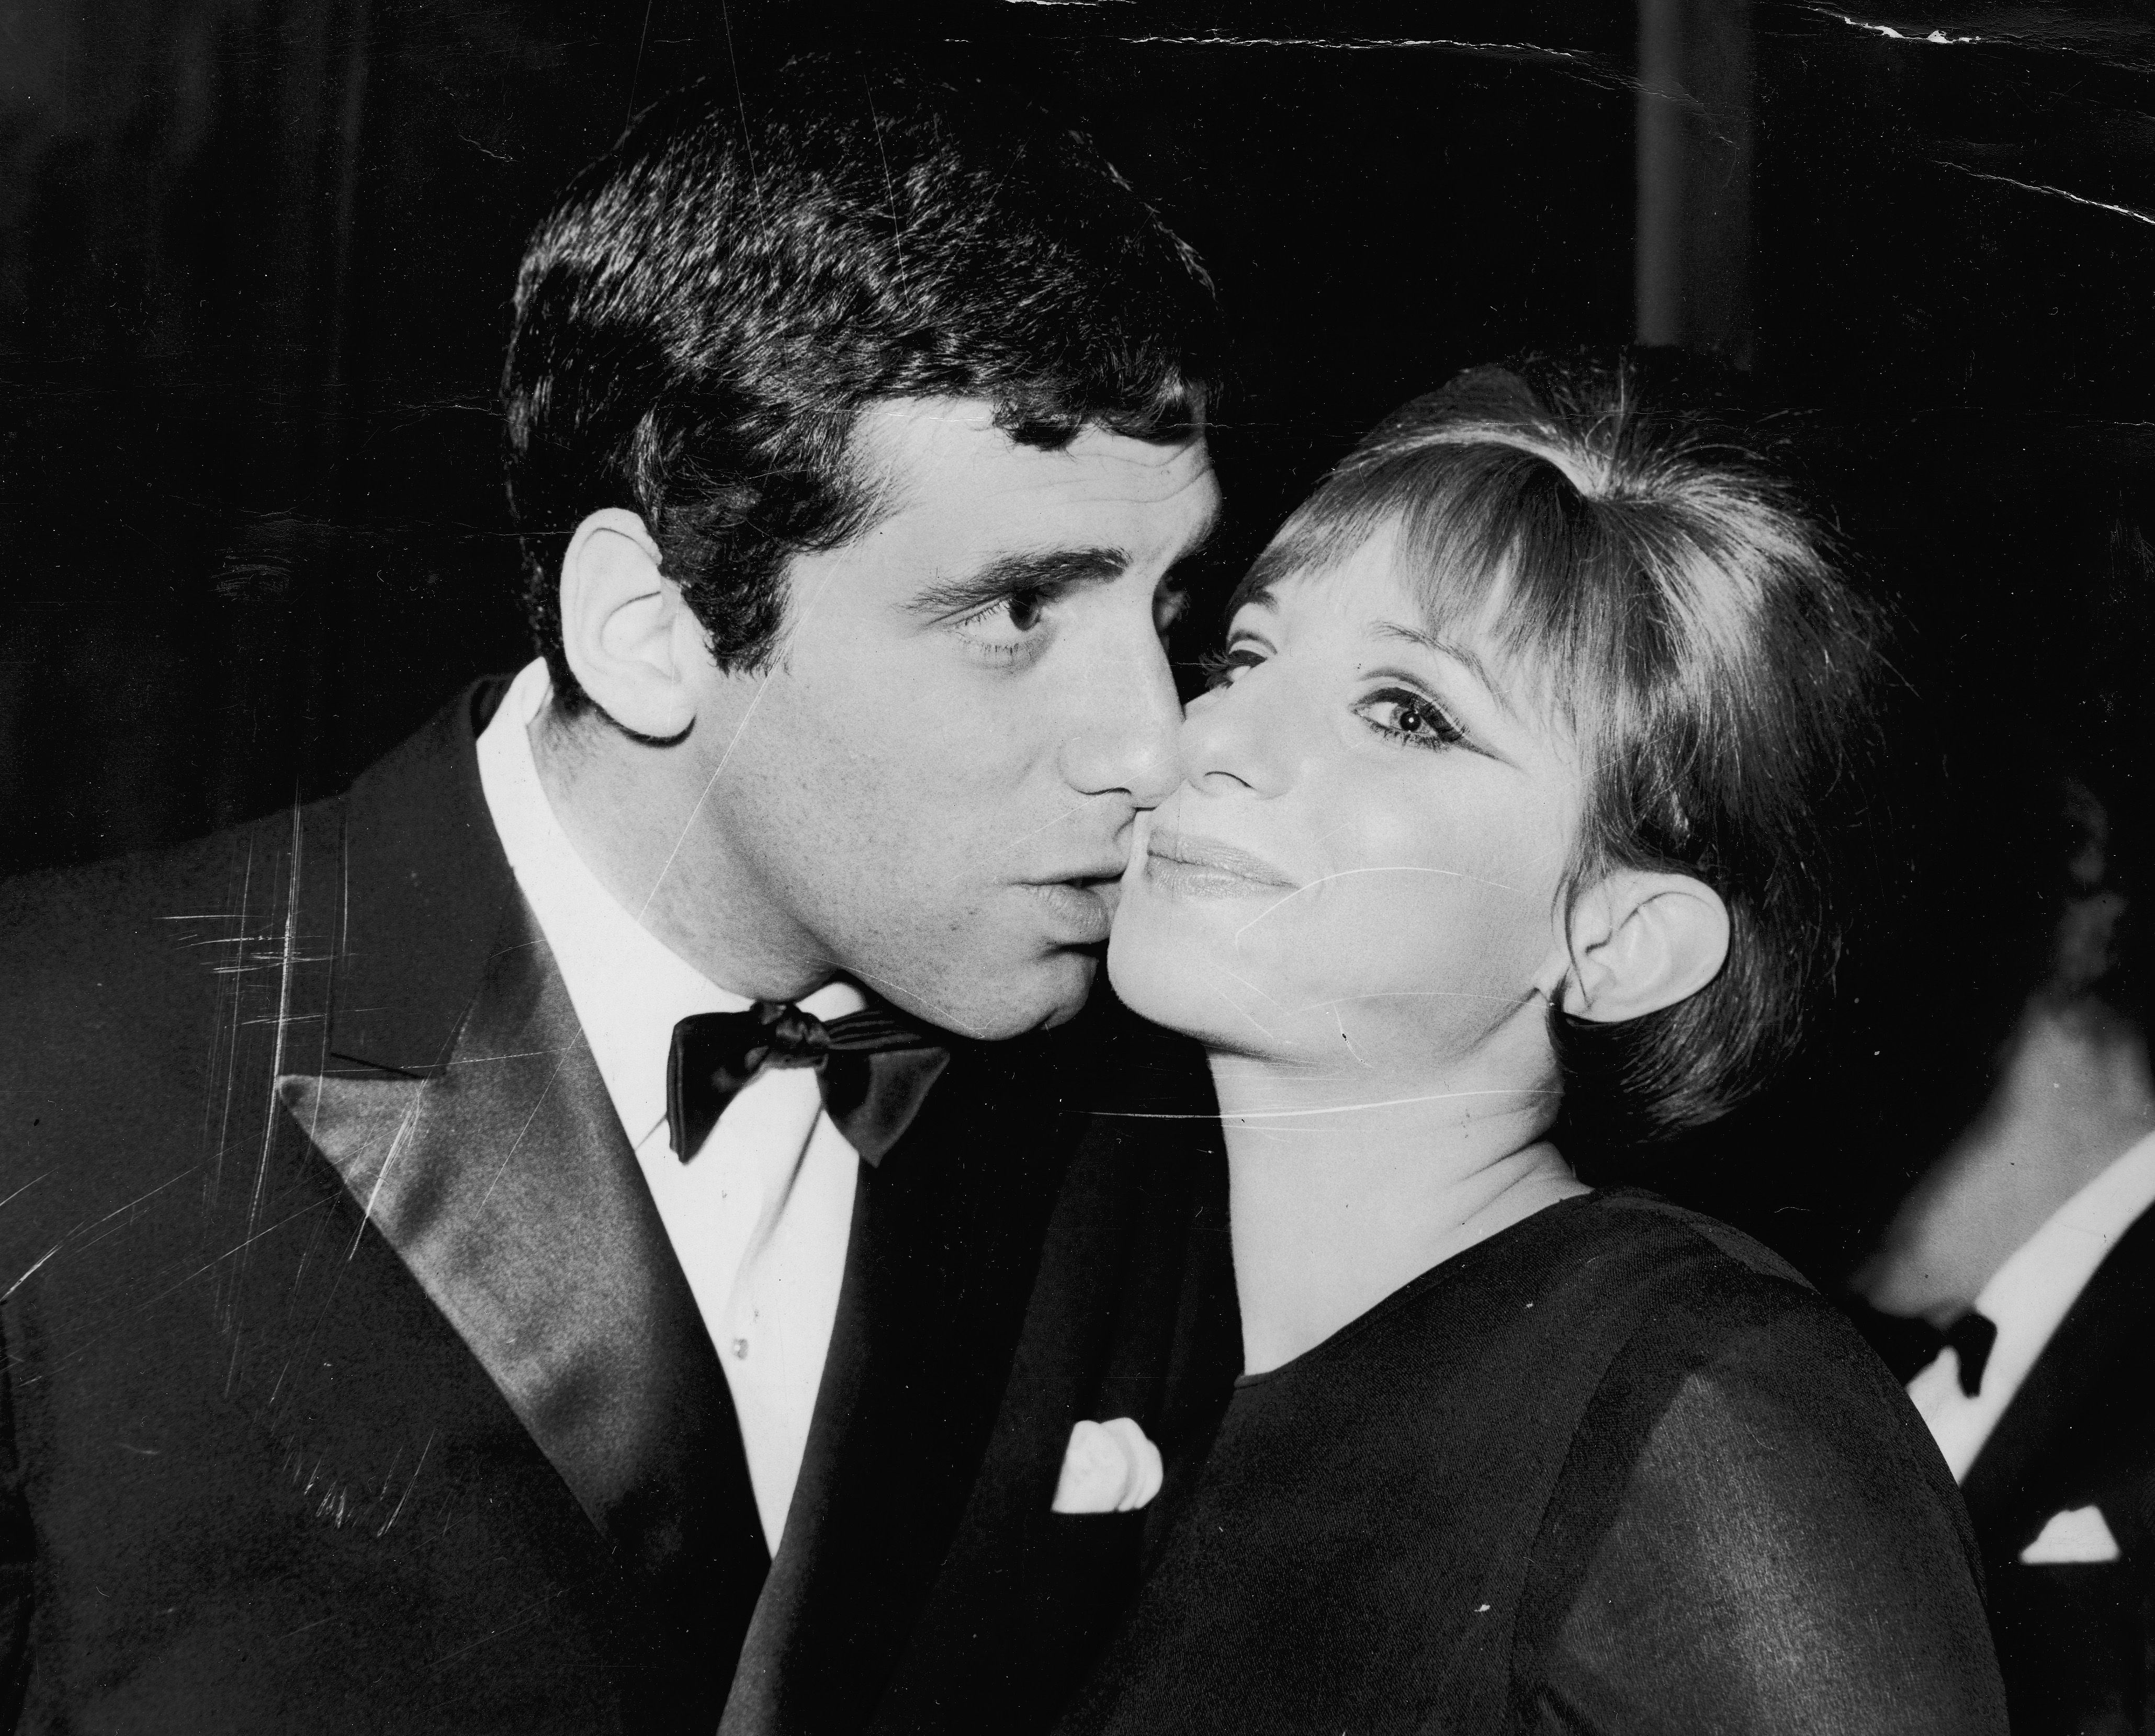 barbara streisand and elliot gould hd